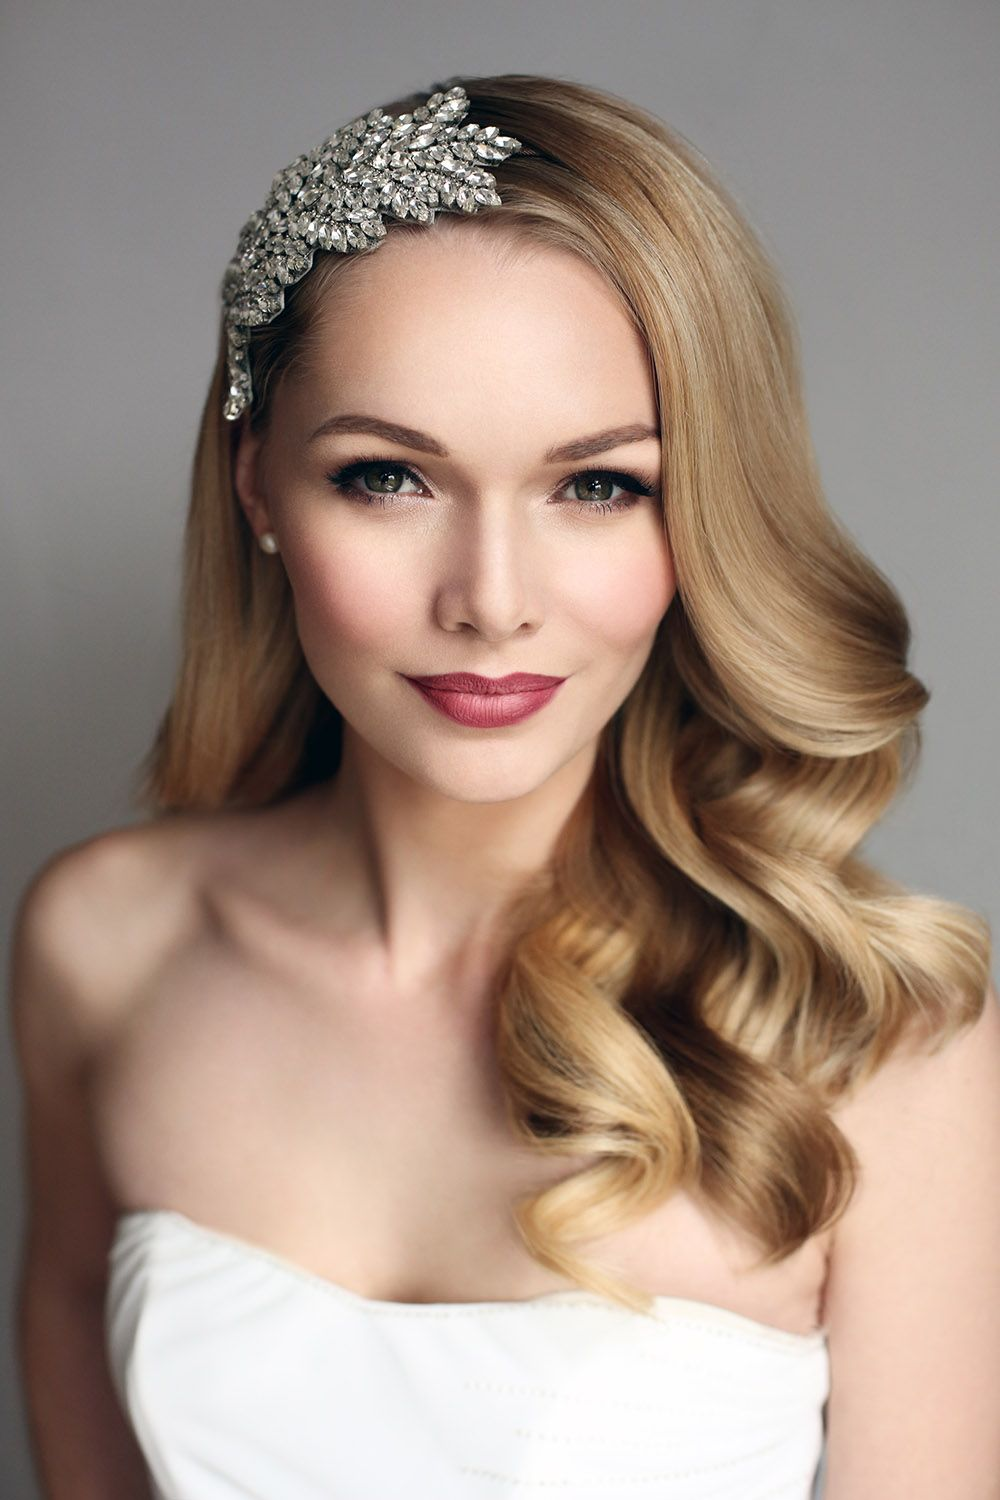 study bridal makeup & hairstyling courses in london at the